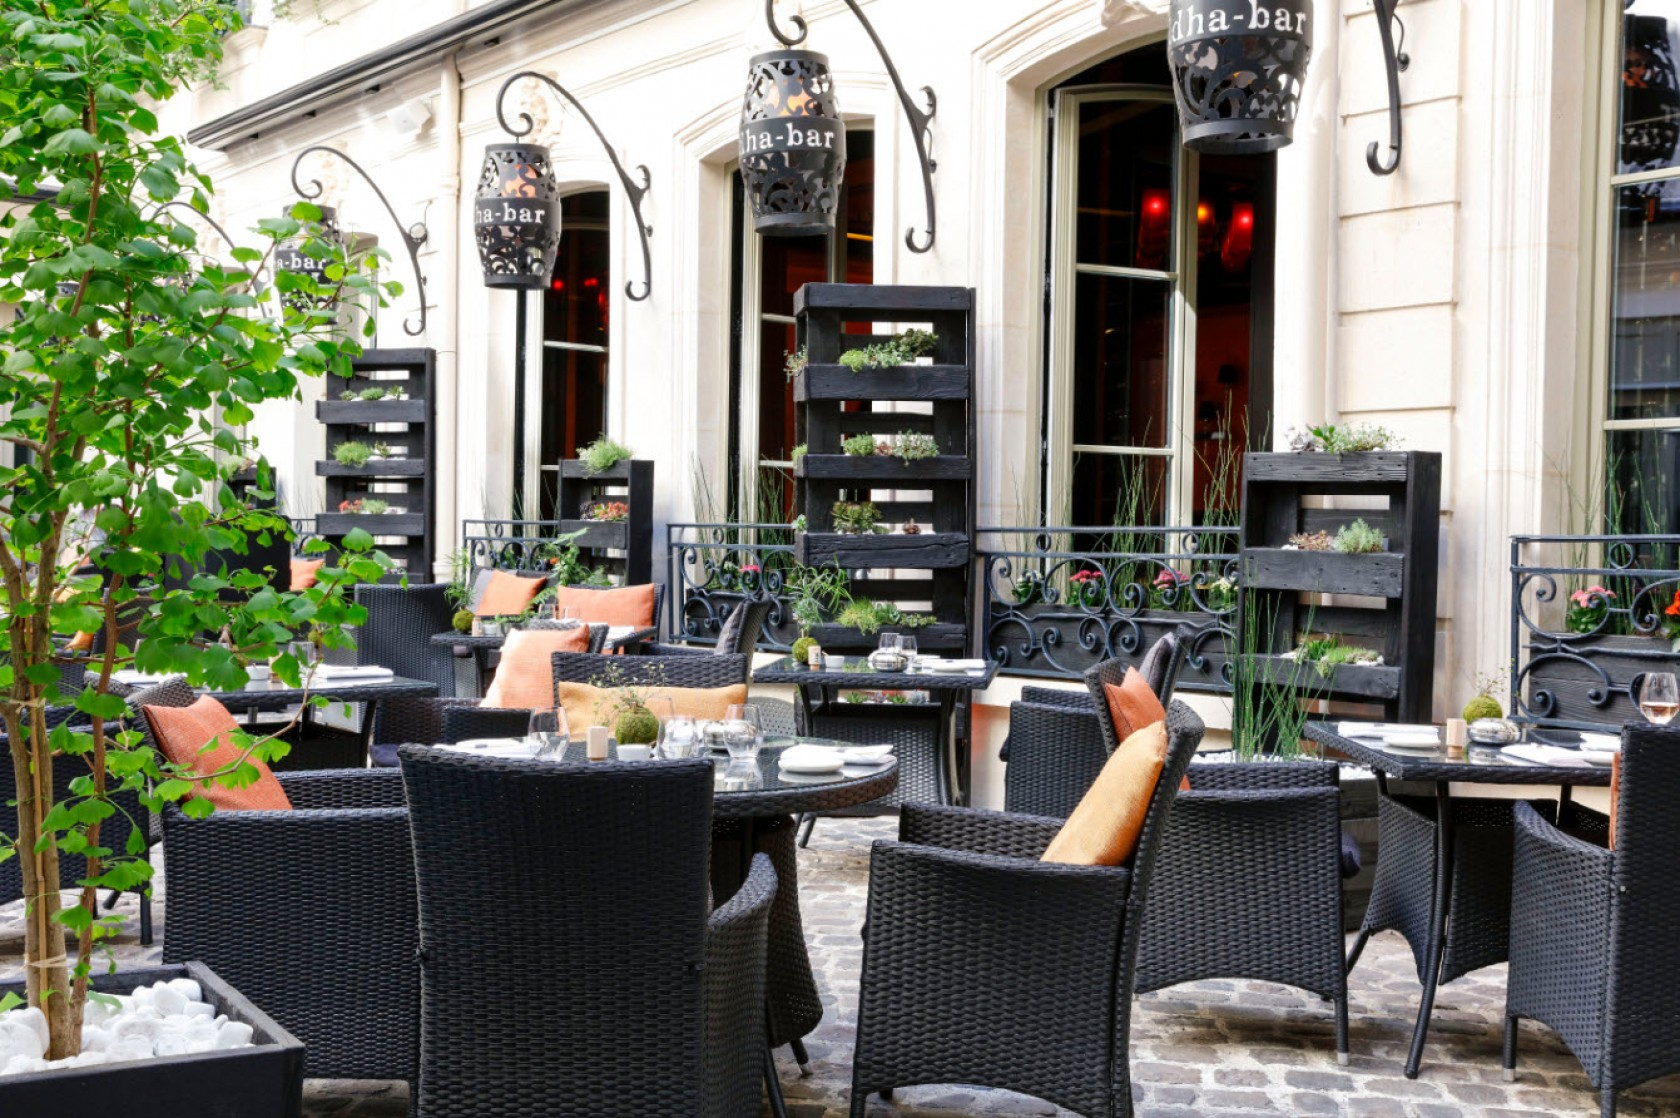 Terrasse Hotel Paris Terrasse Buddha Bar Hotel Paris Destination Inspiration For